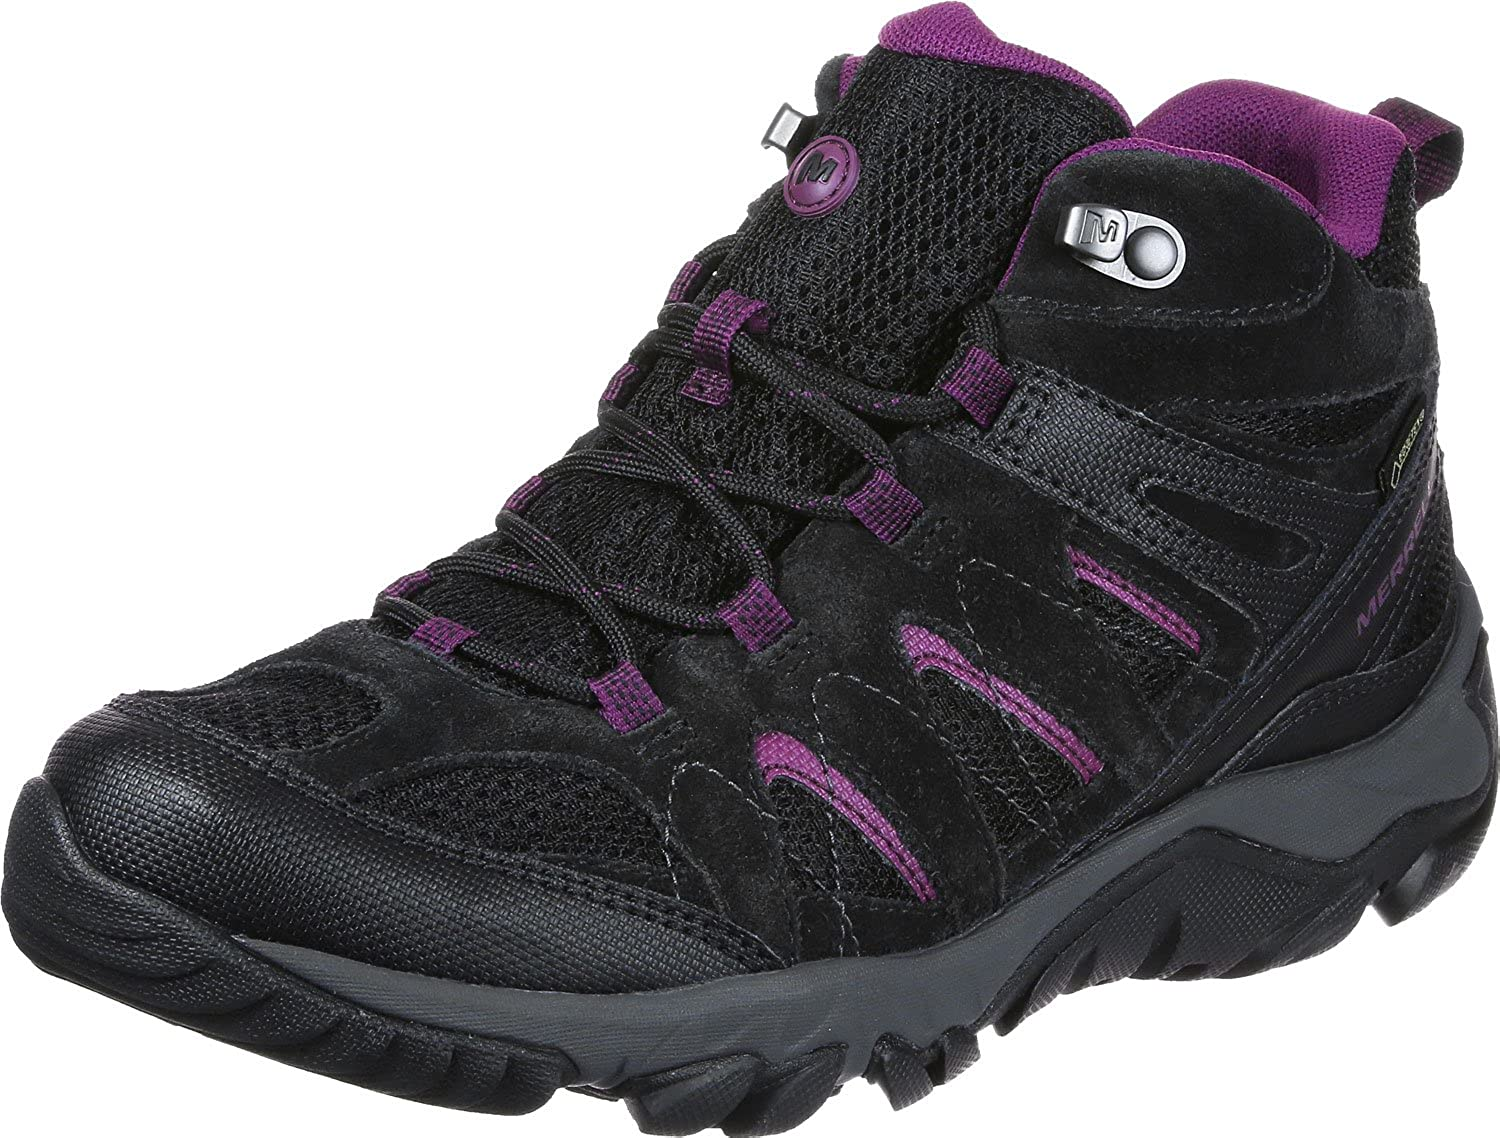 Merrell Outmost Mid Ventilator GTX W